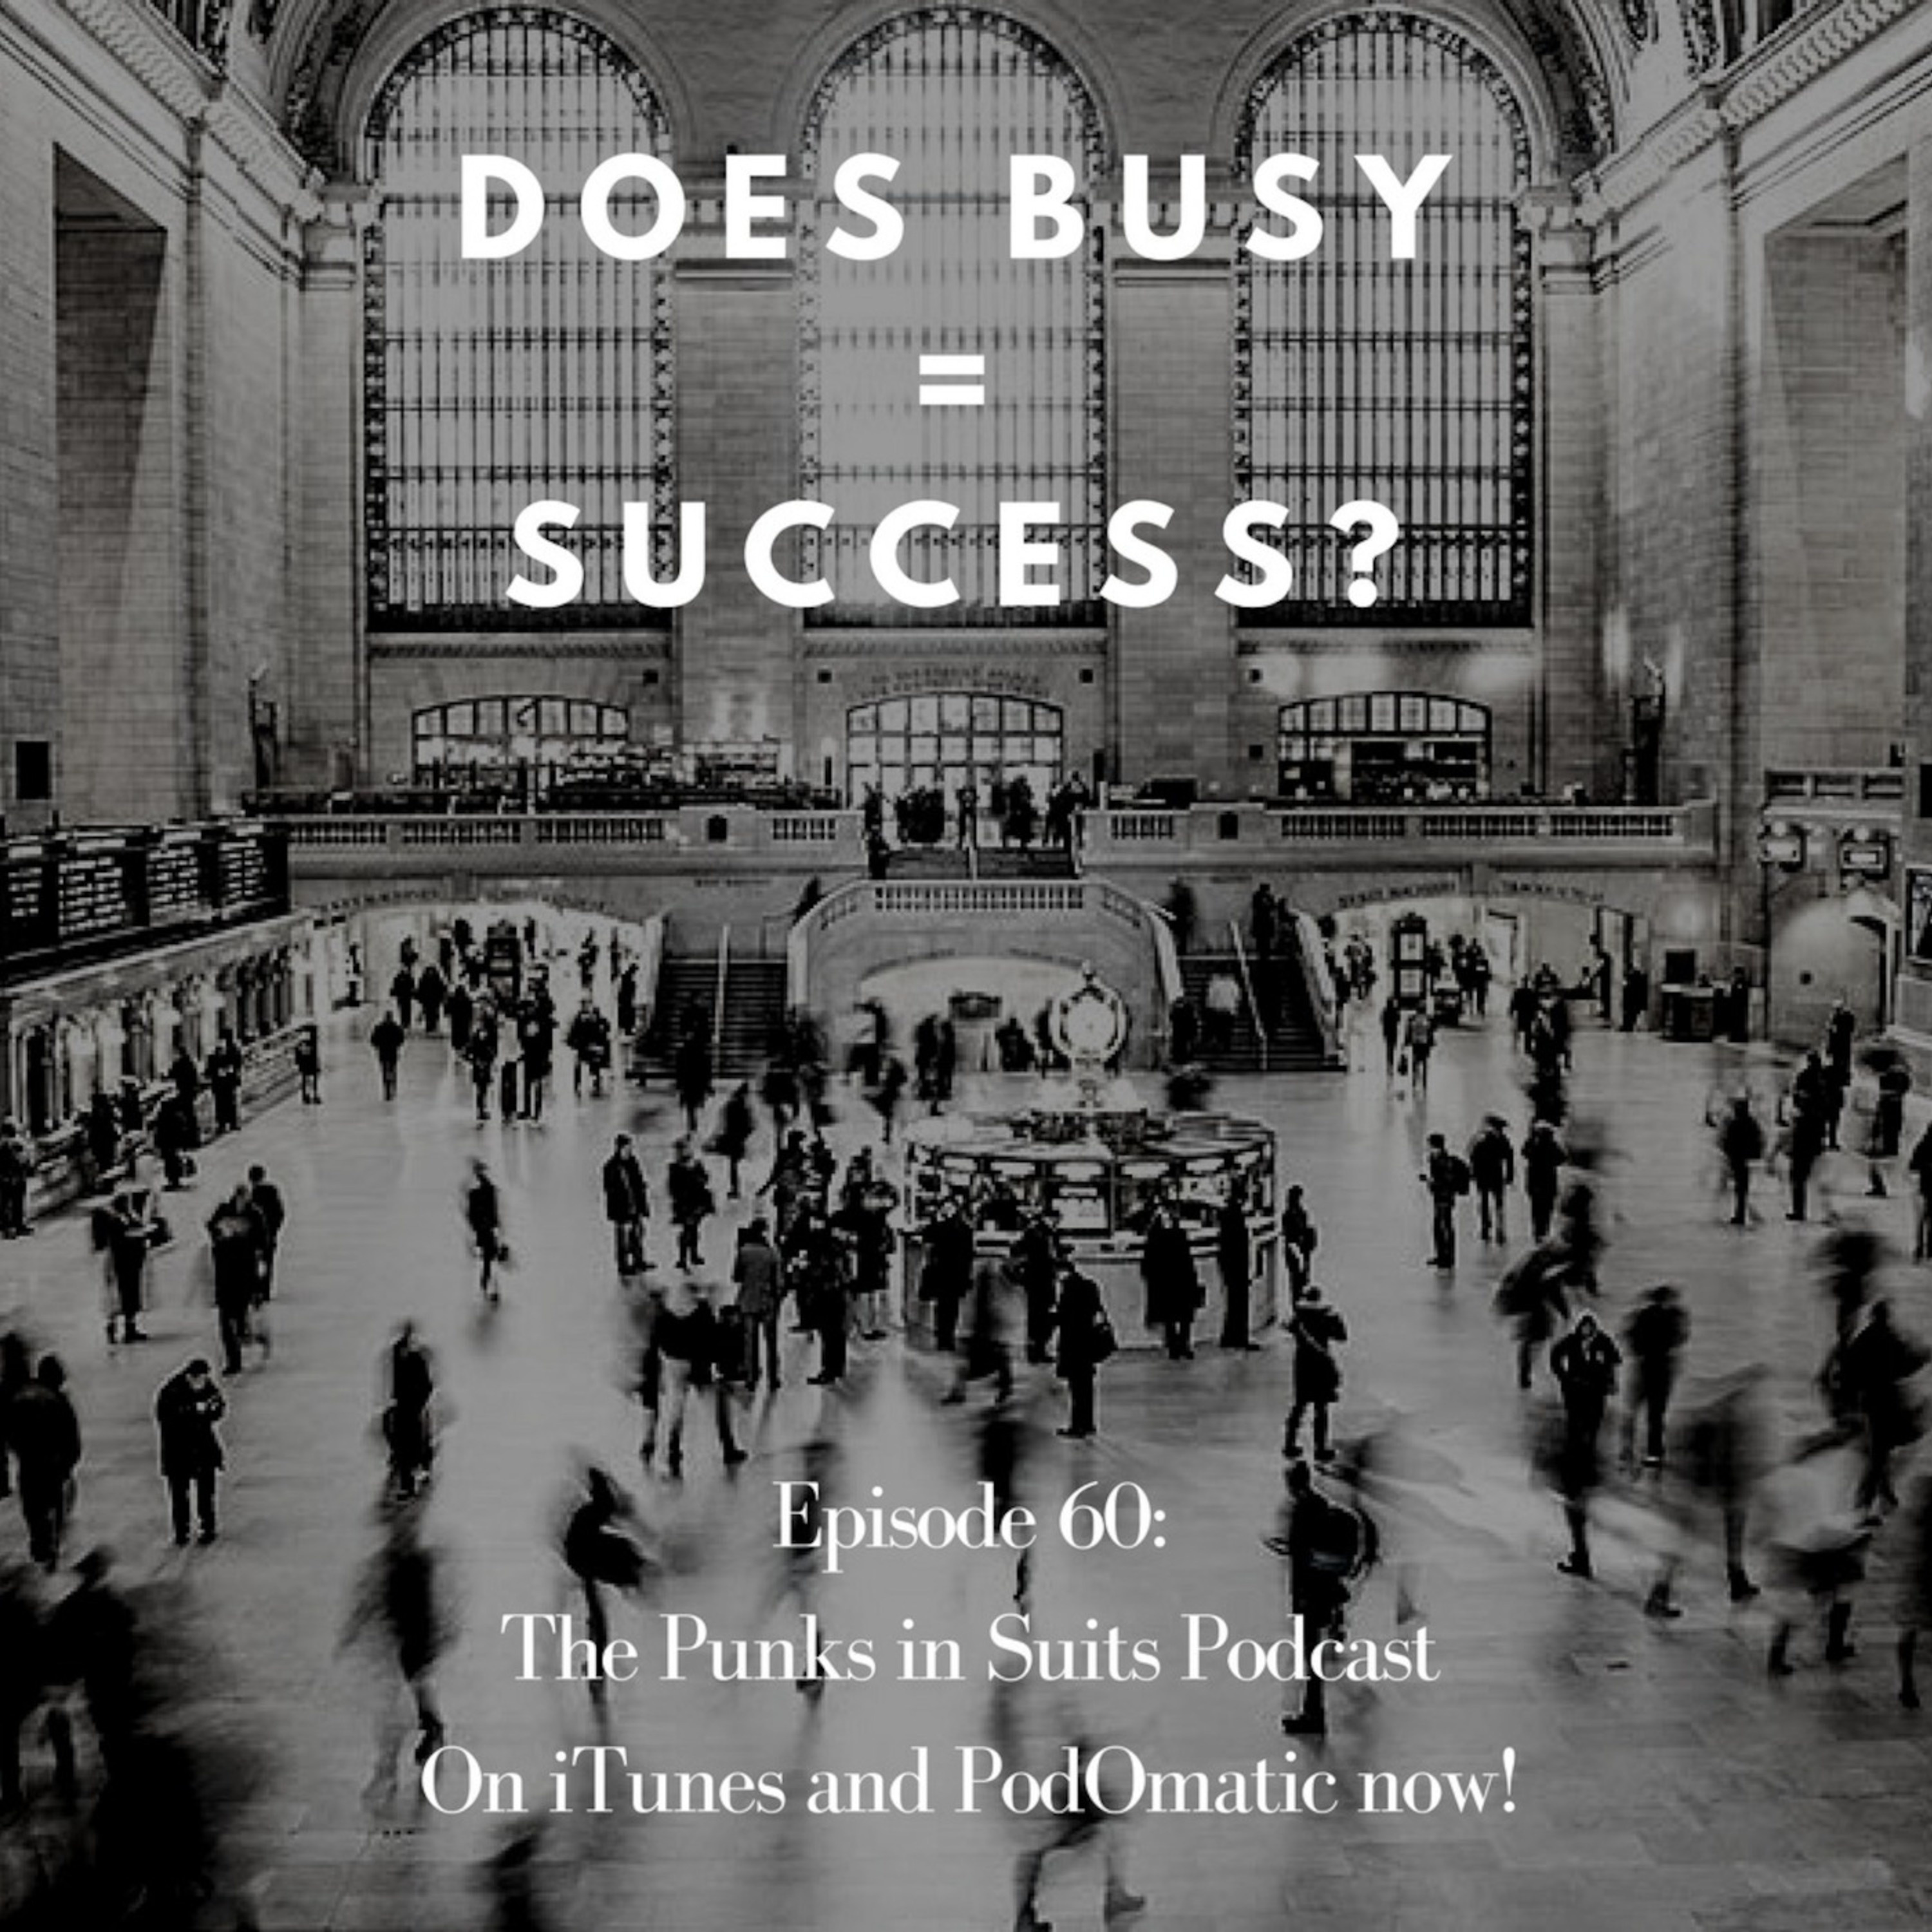 Episode 60: Does Busy = Success?